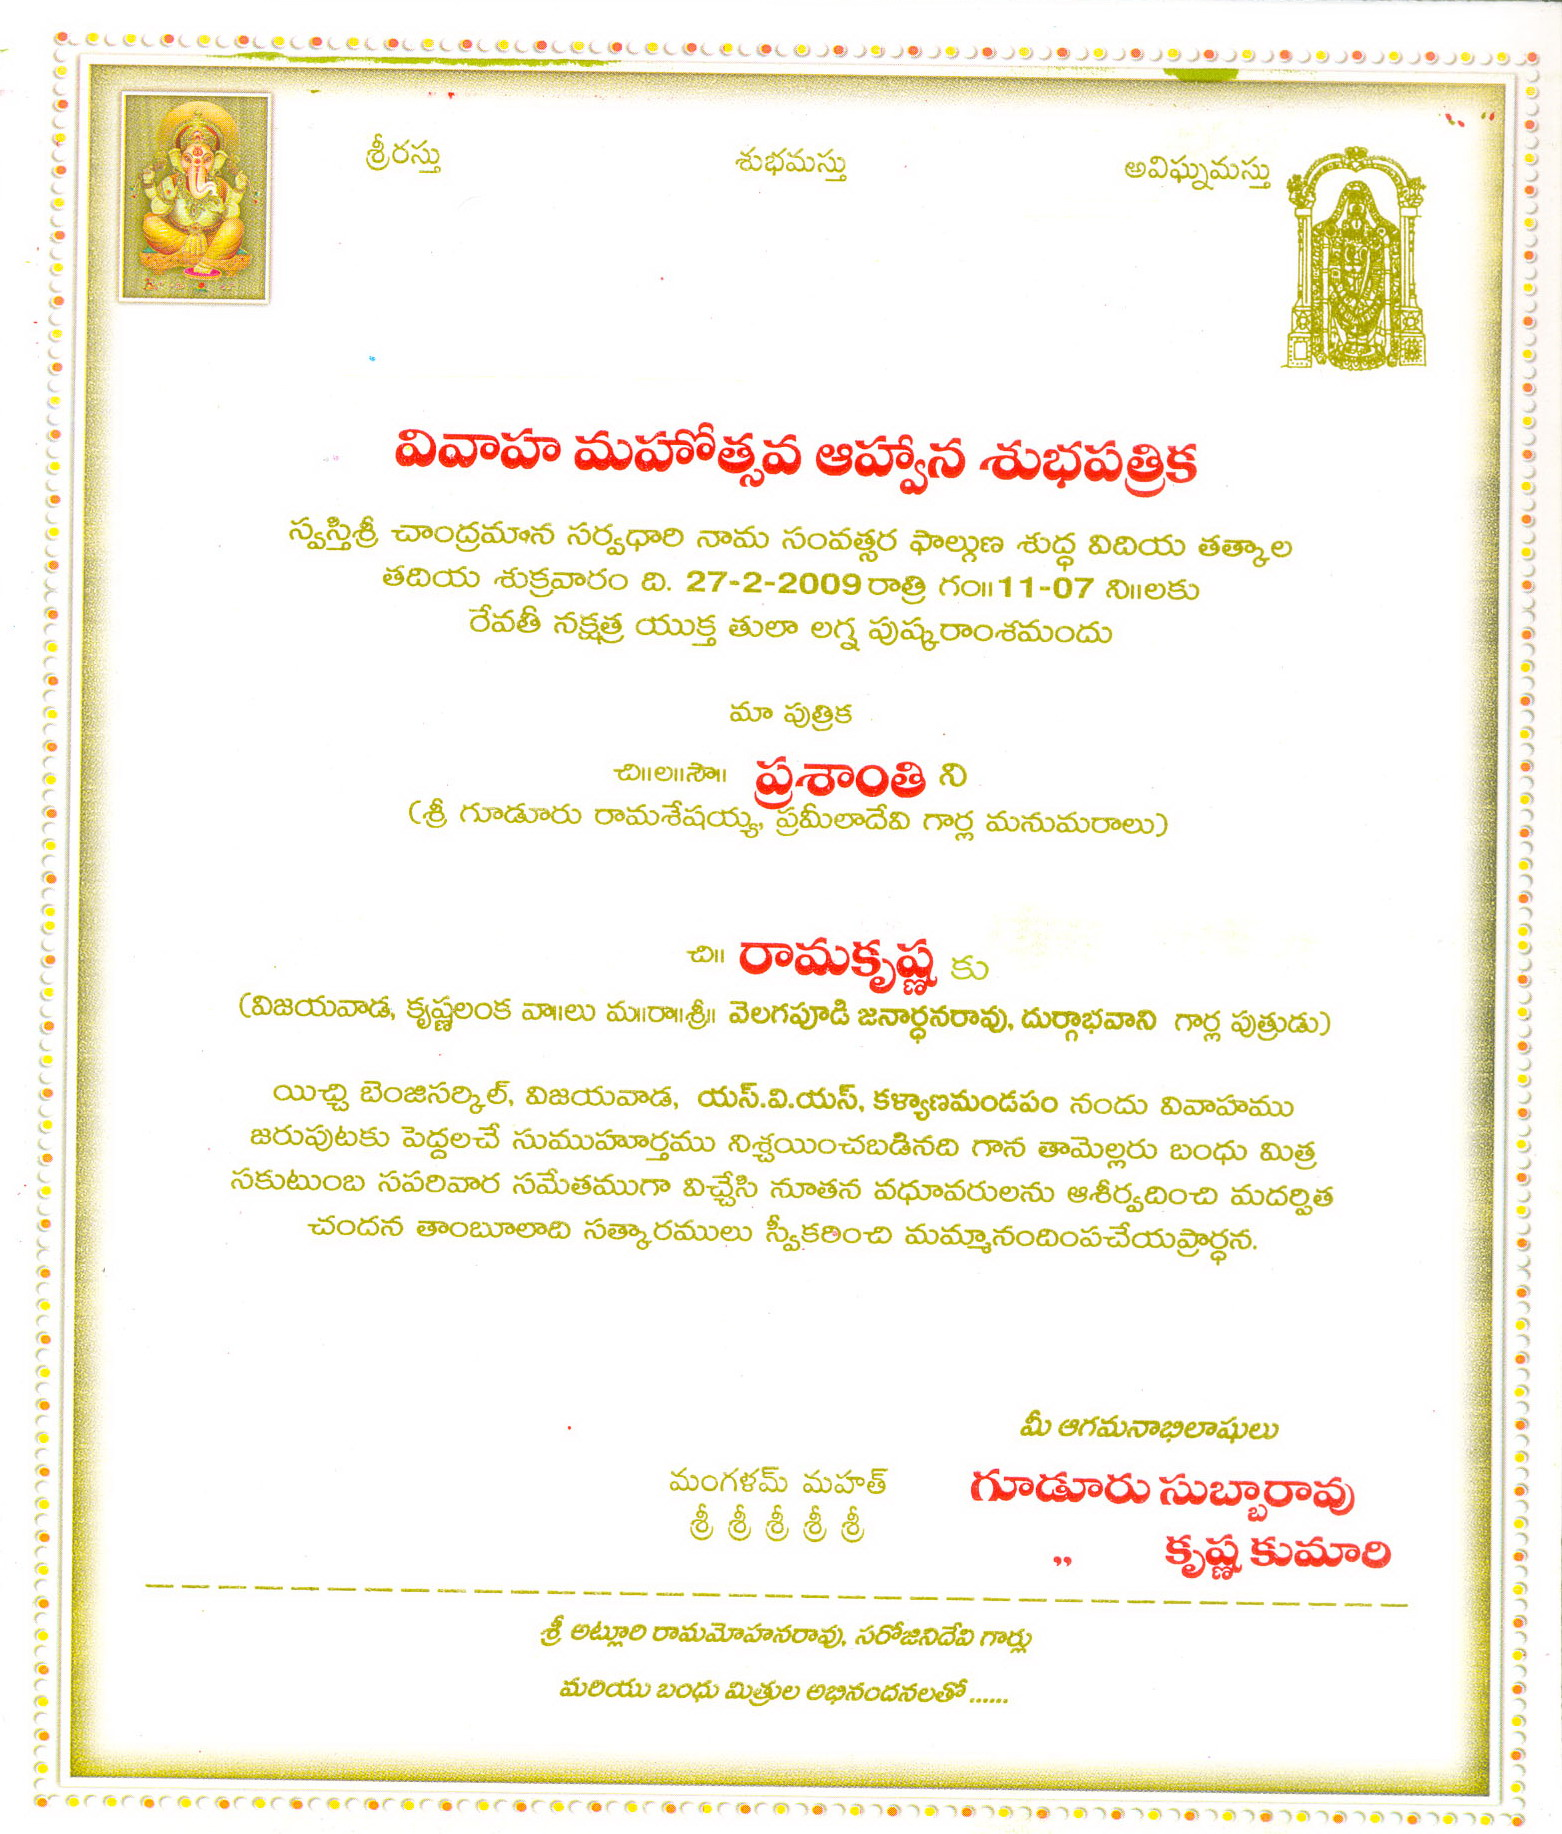 2009 Marriage Sri GSubba Rao 2